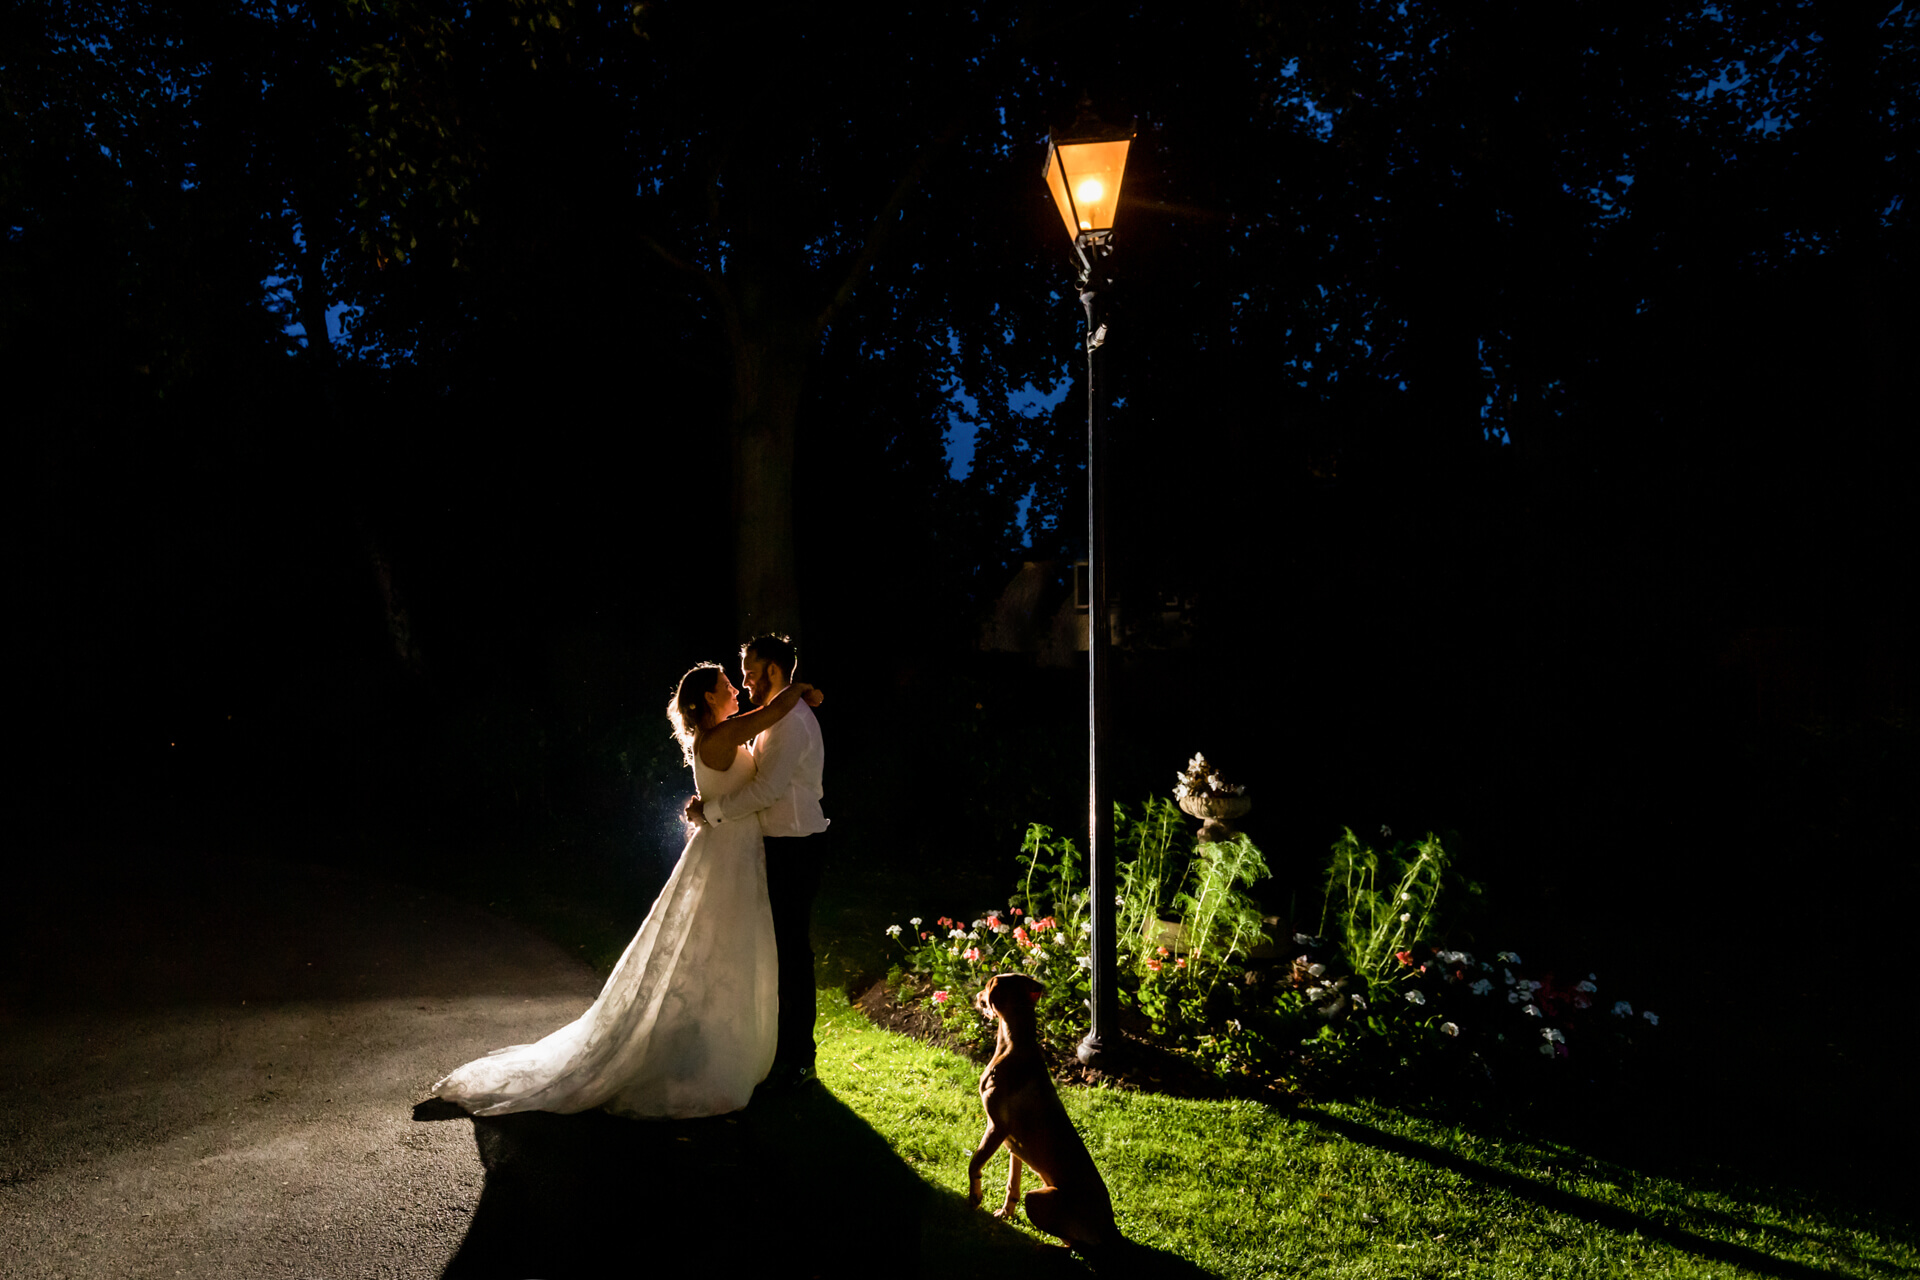 bride and groom and their pet dog standing by a out lamp at night